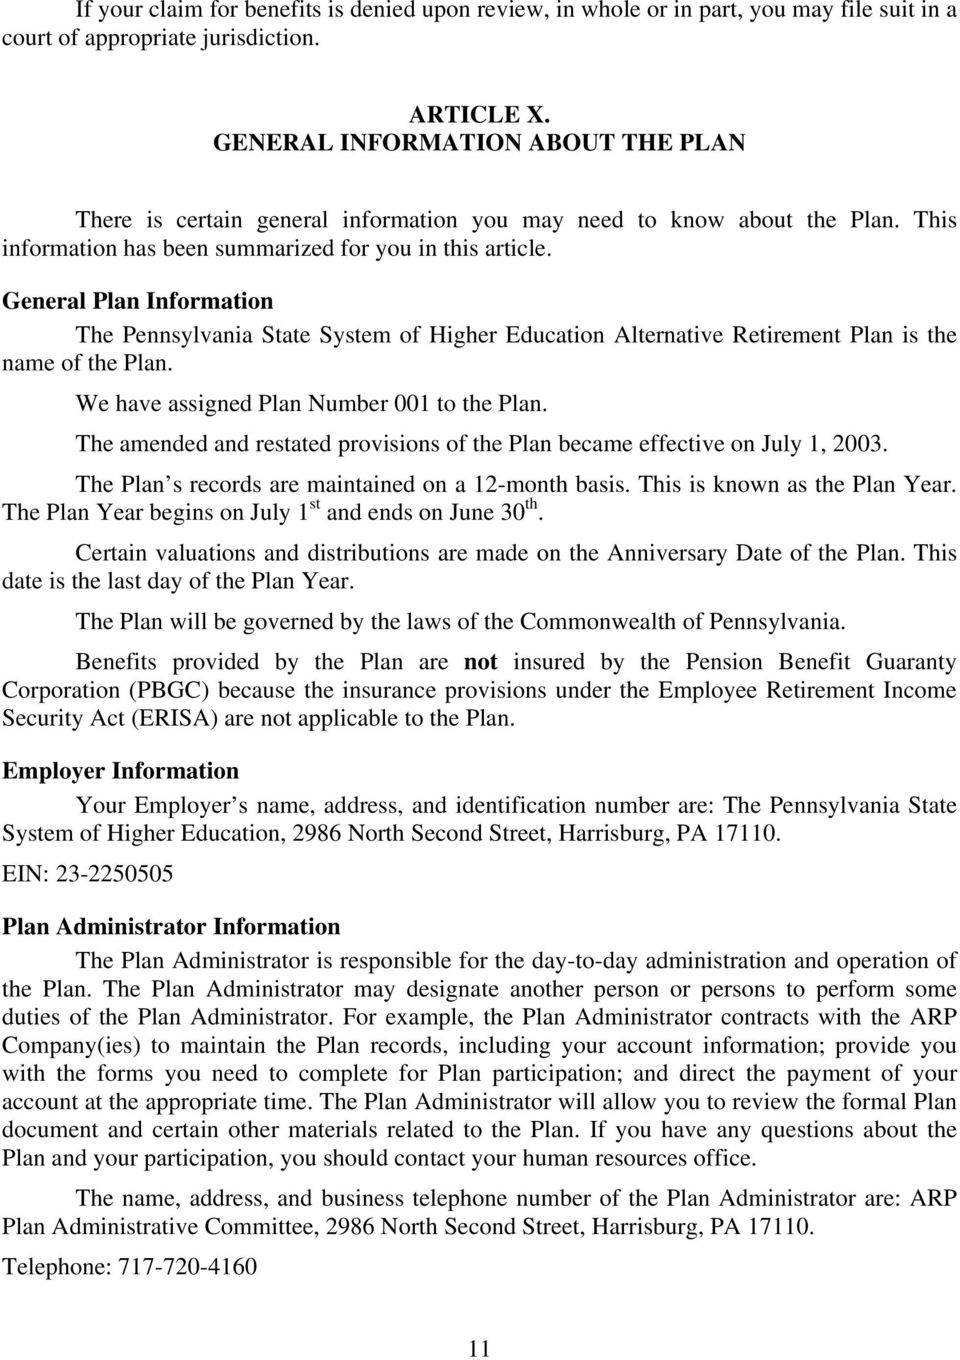 General Plan Information The Pennsylvania State System of Higher Education Alternative Retirement Plan is the name of the Plan. We have assigned Plan Number 001 to the Plan.